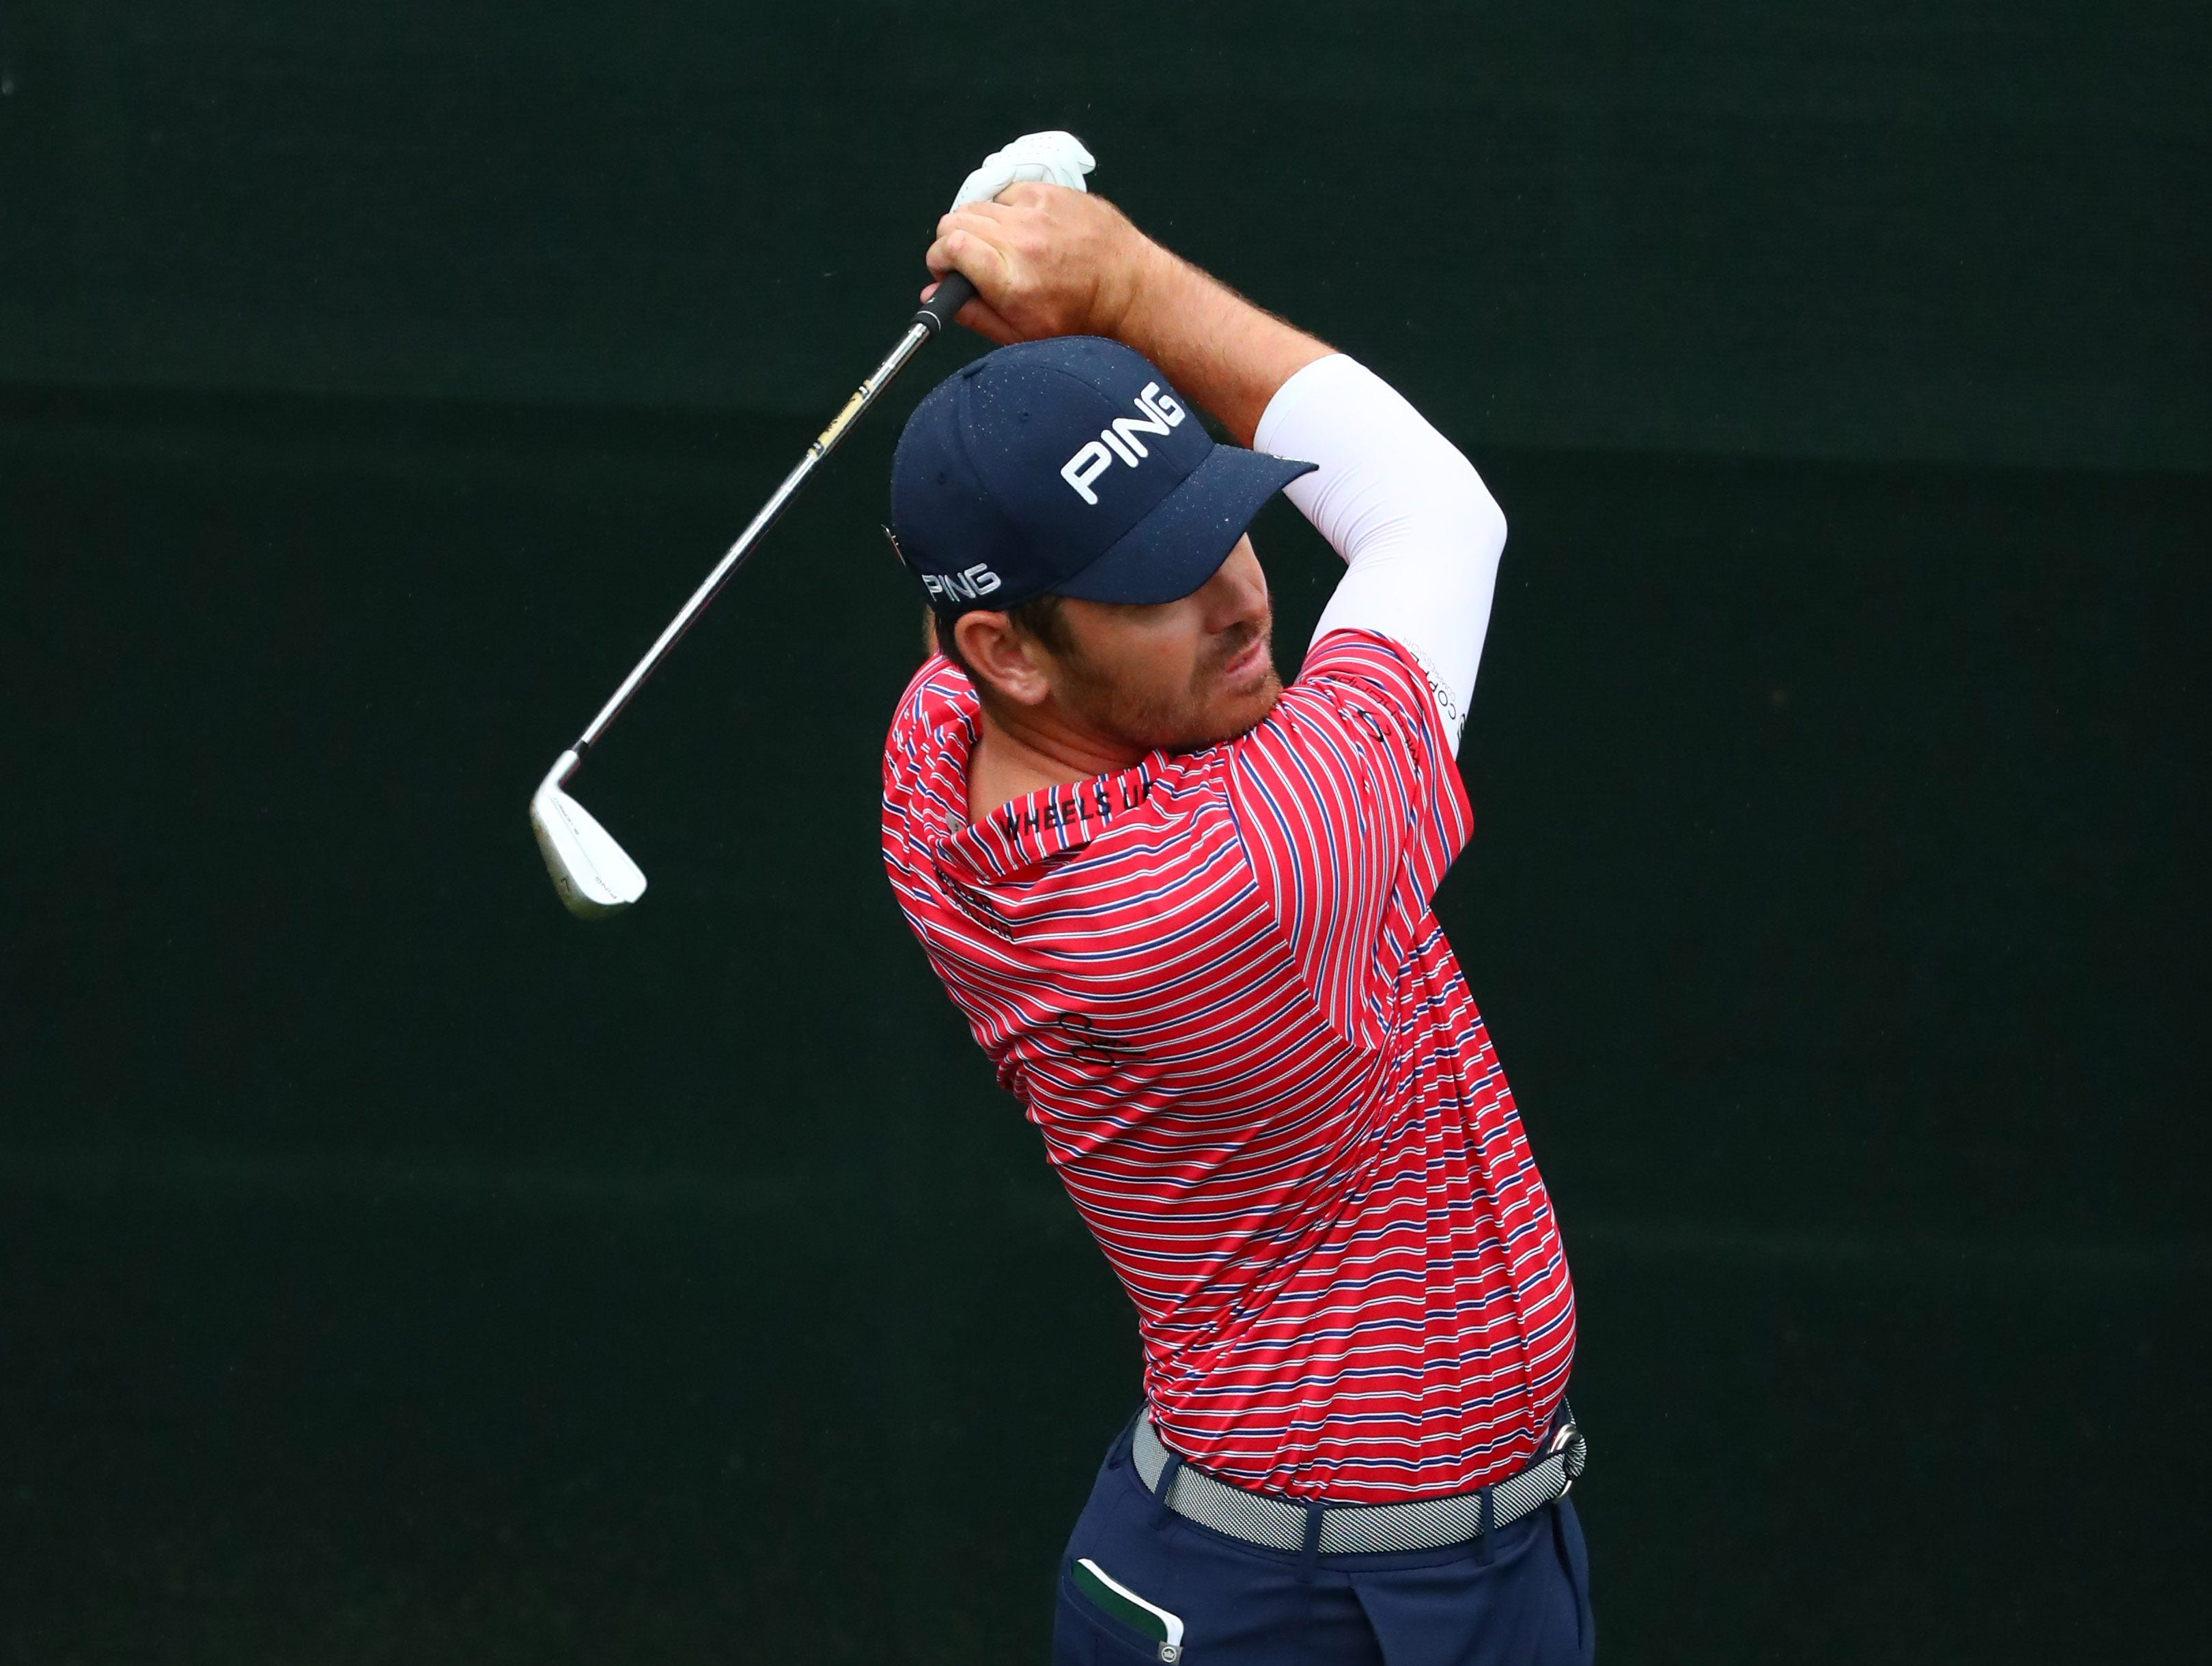 Apr 12, 2019; Augusta, GA, USA; Louis Oosthuizen hits his tee shot on the 16th hole during the second round of The Masters golf tournament at Augusta National Golf Club. Mandatory Credit: Rob Schumacher-USA TODAY Sports